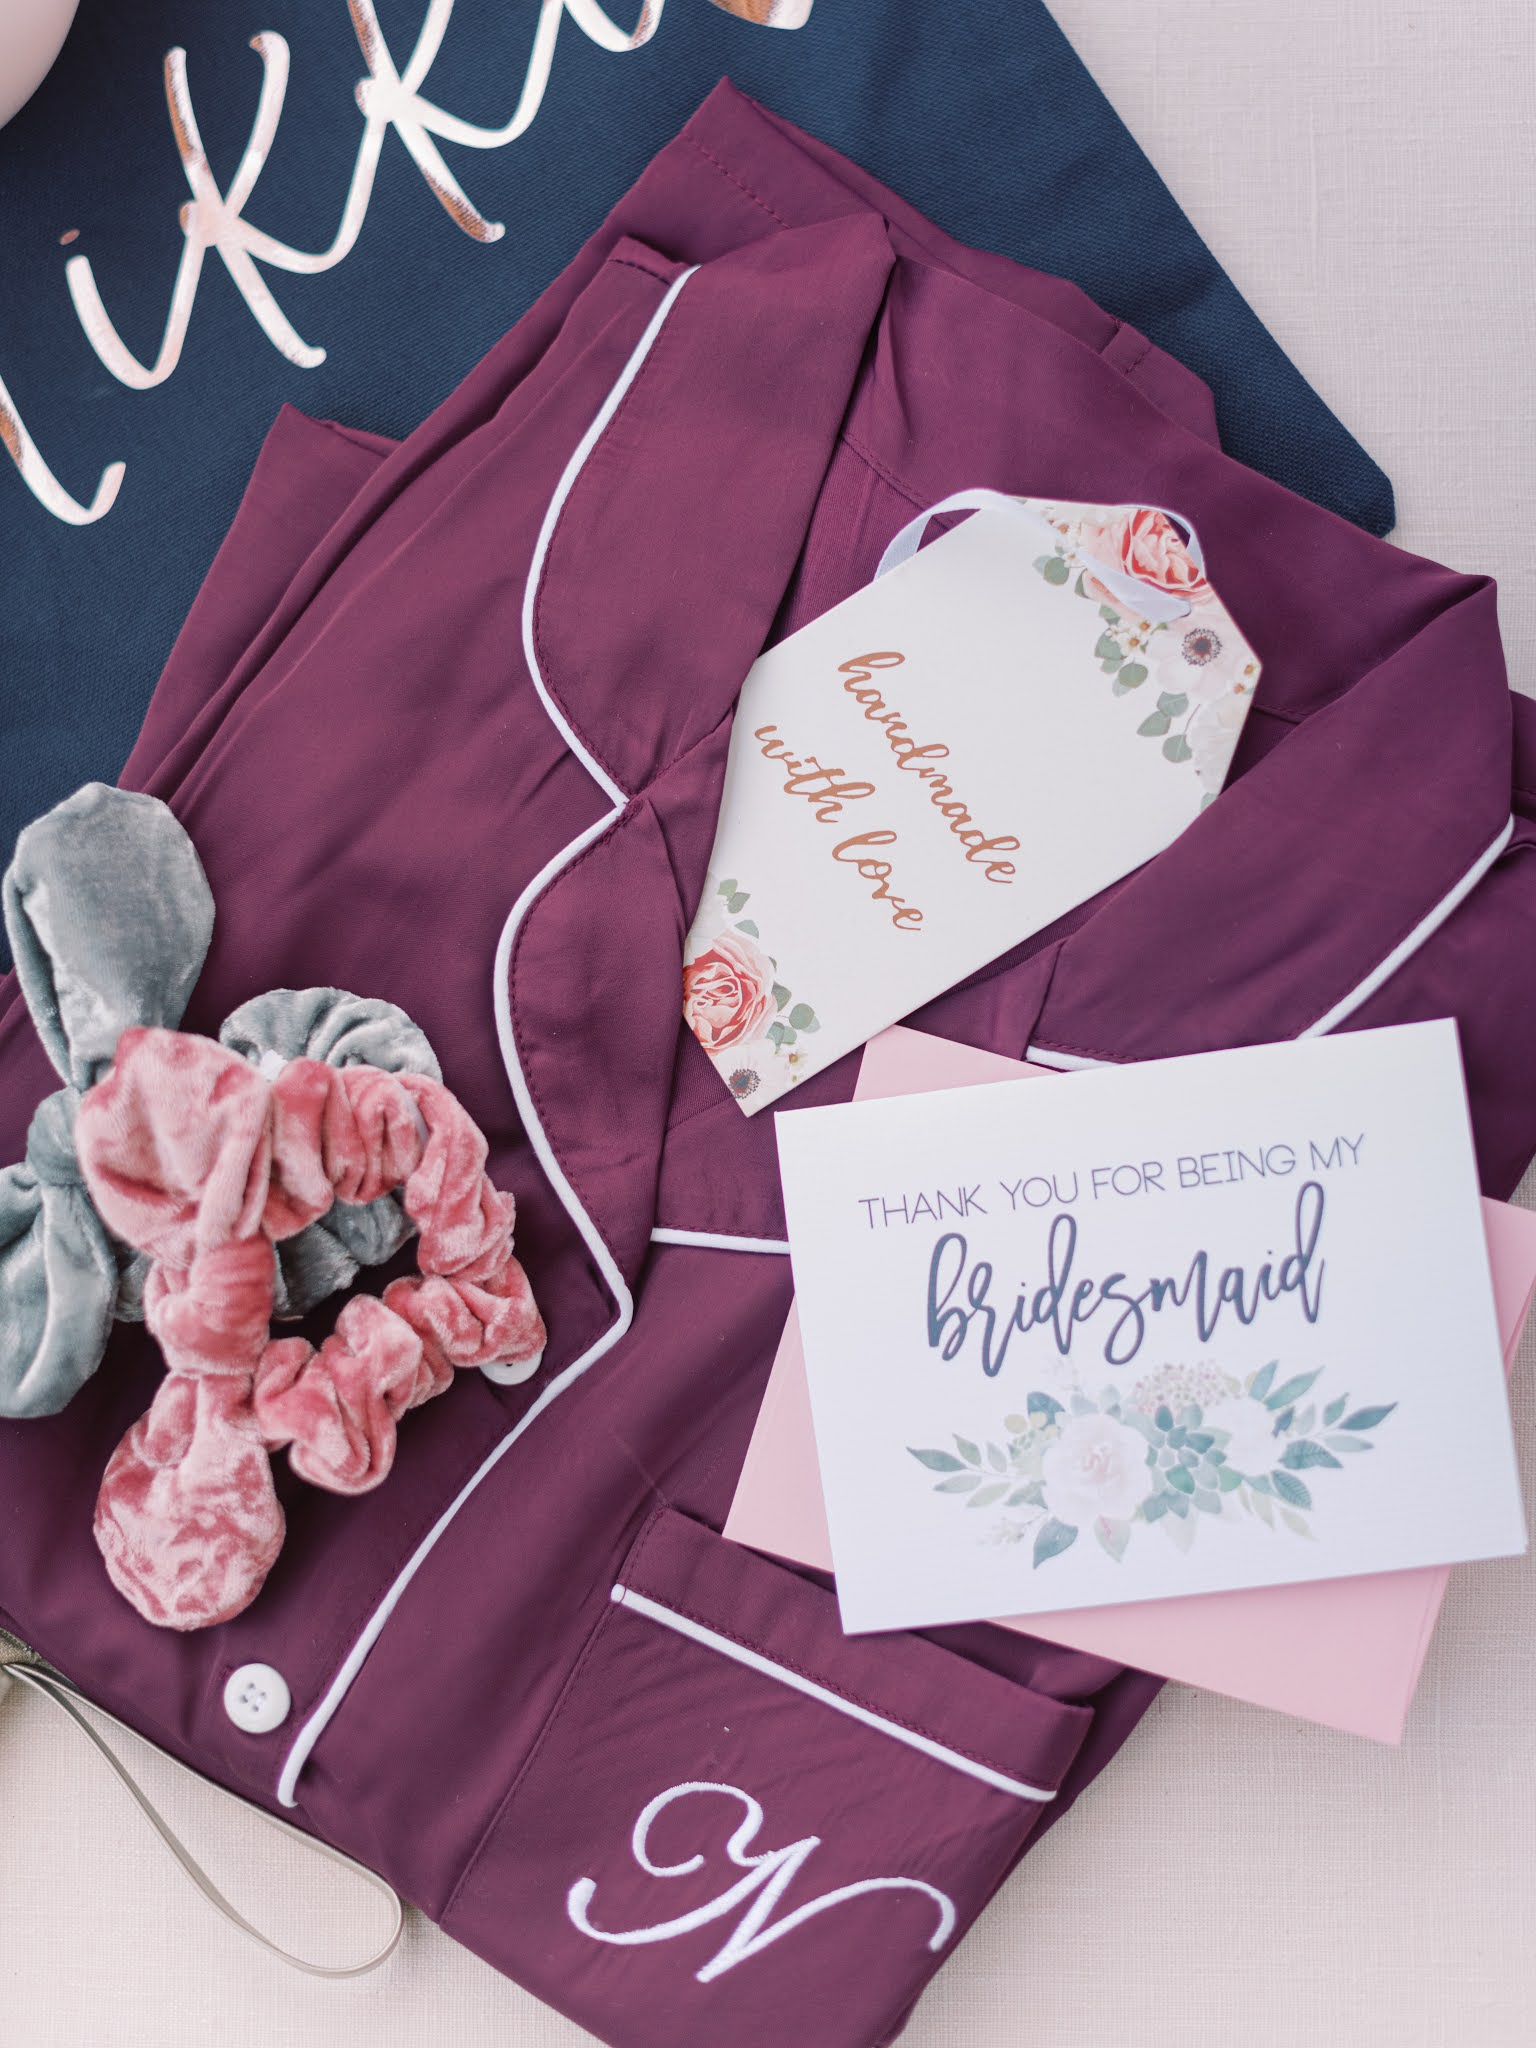 Gifts For Bridesmaids on Wedding Day